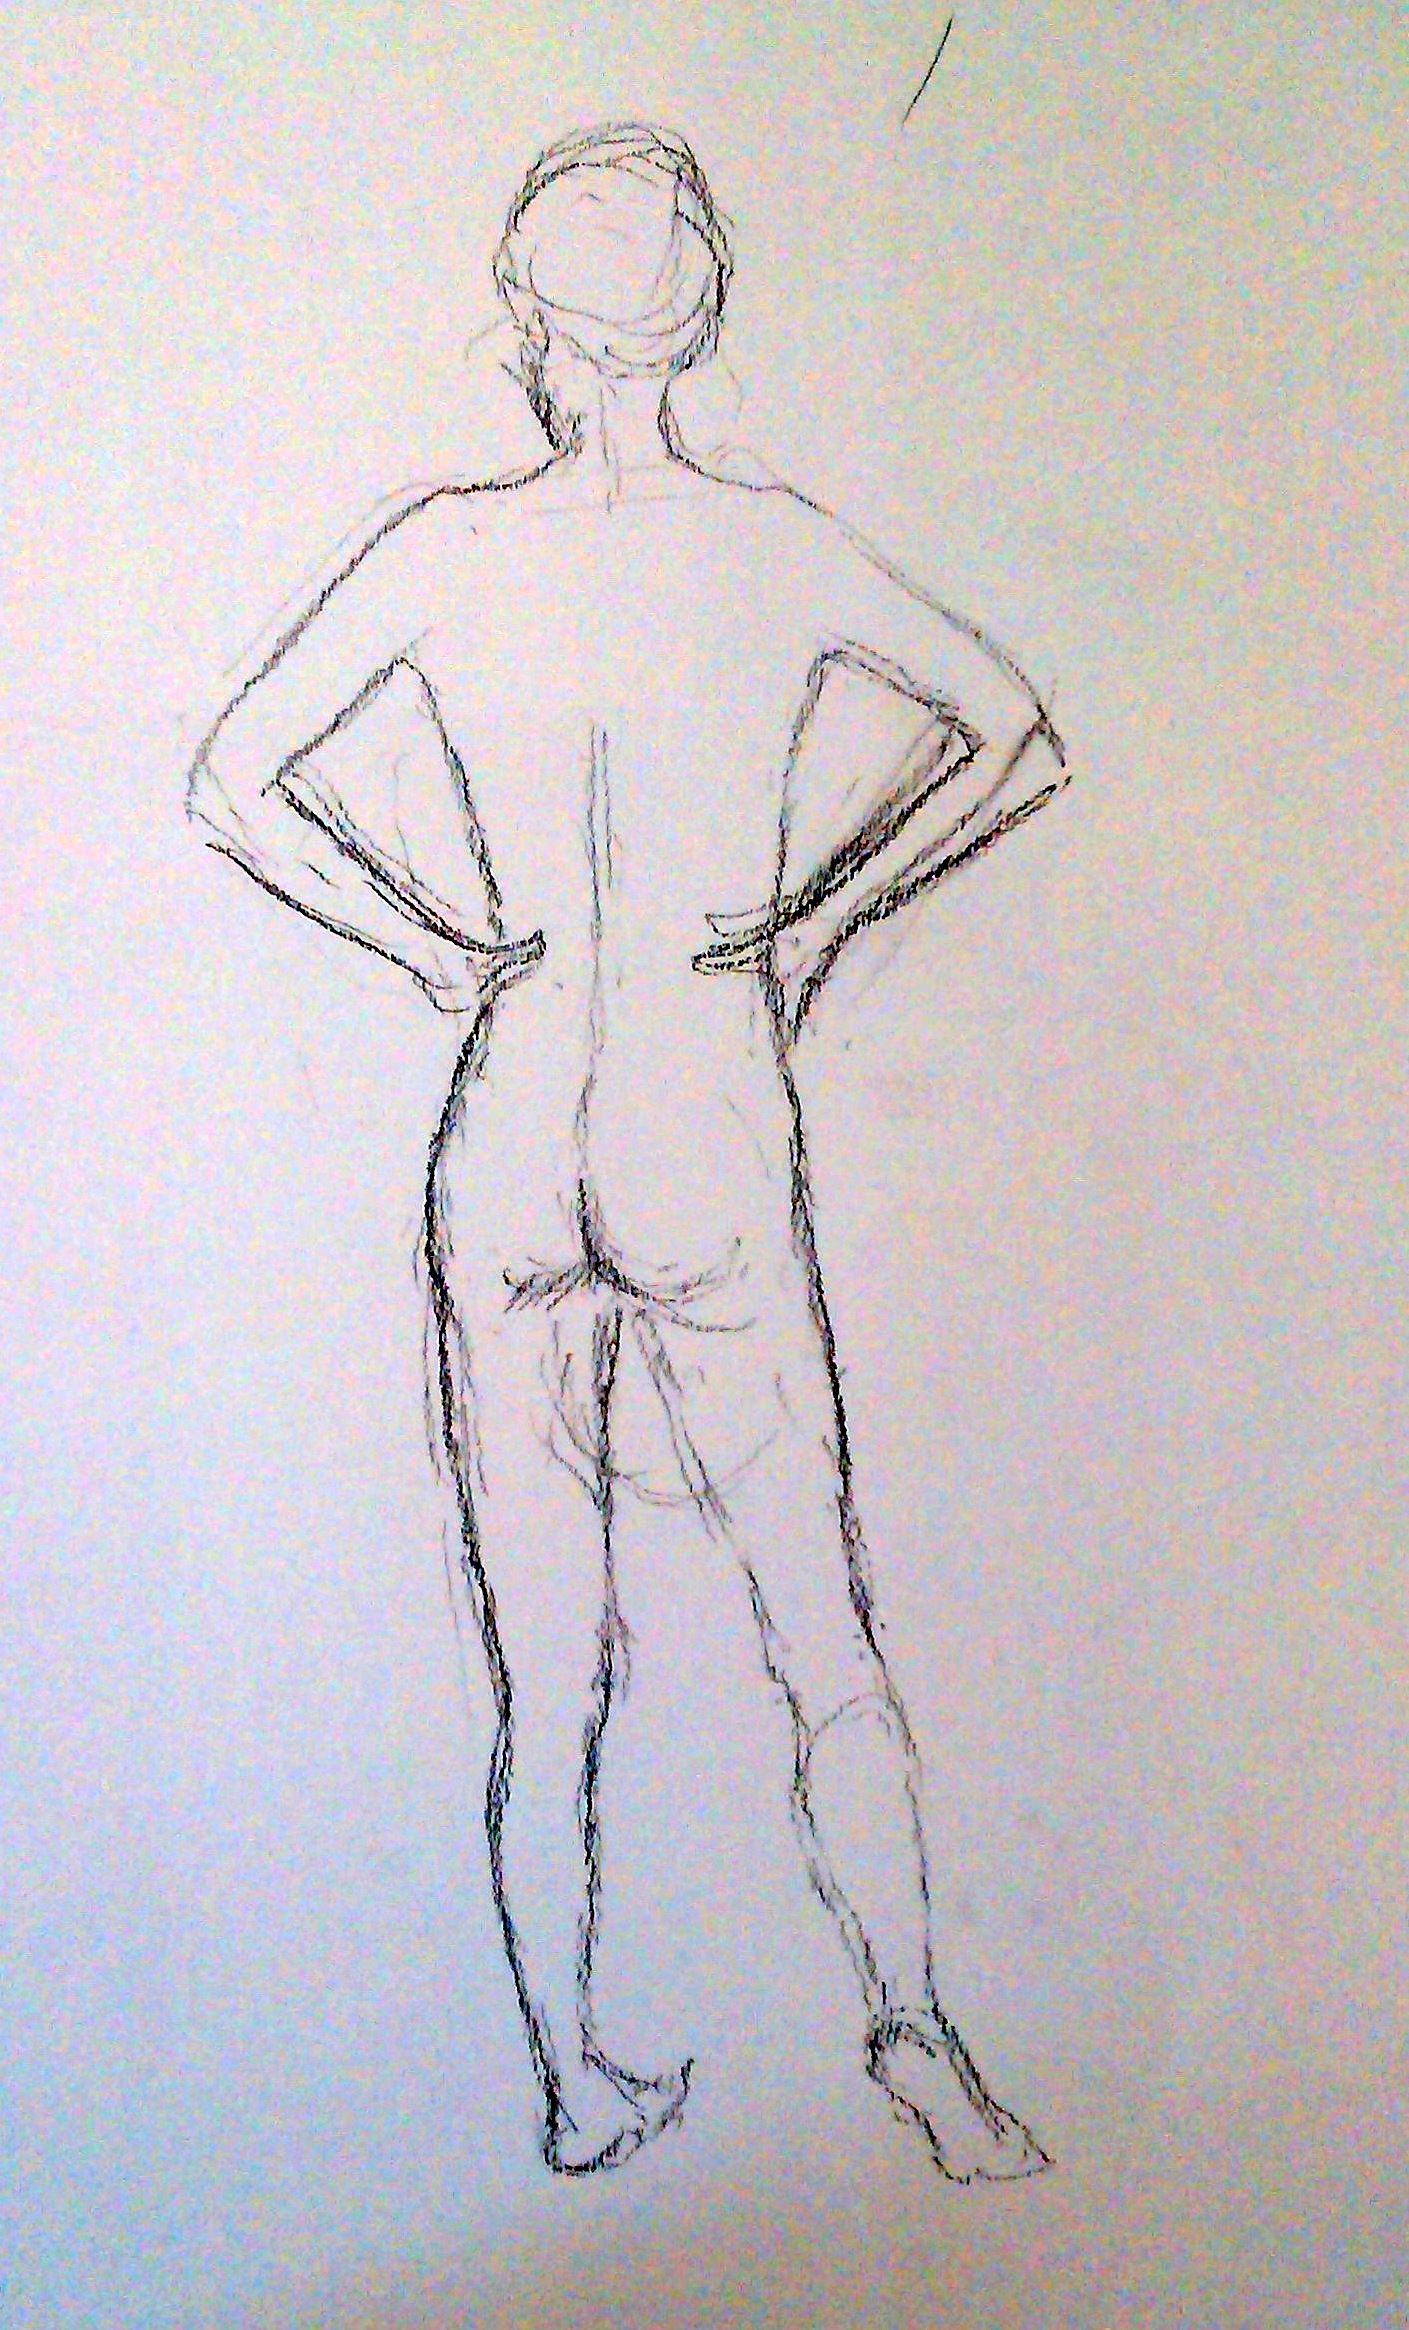 By the 3rd pose Edna has revealed her excitement at confronting an able bodied form, and how it is helping her understand her condition. I decide a spine view is in order